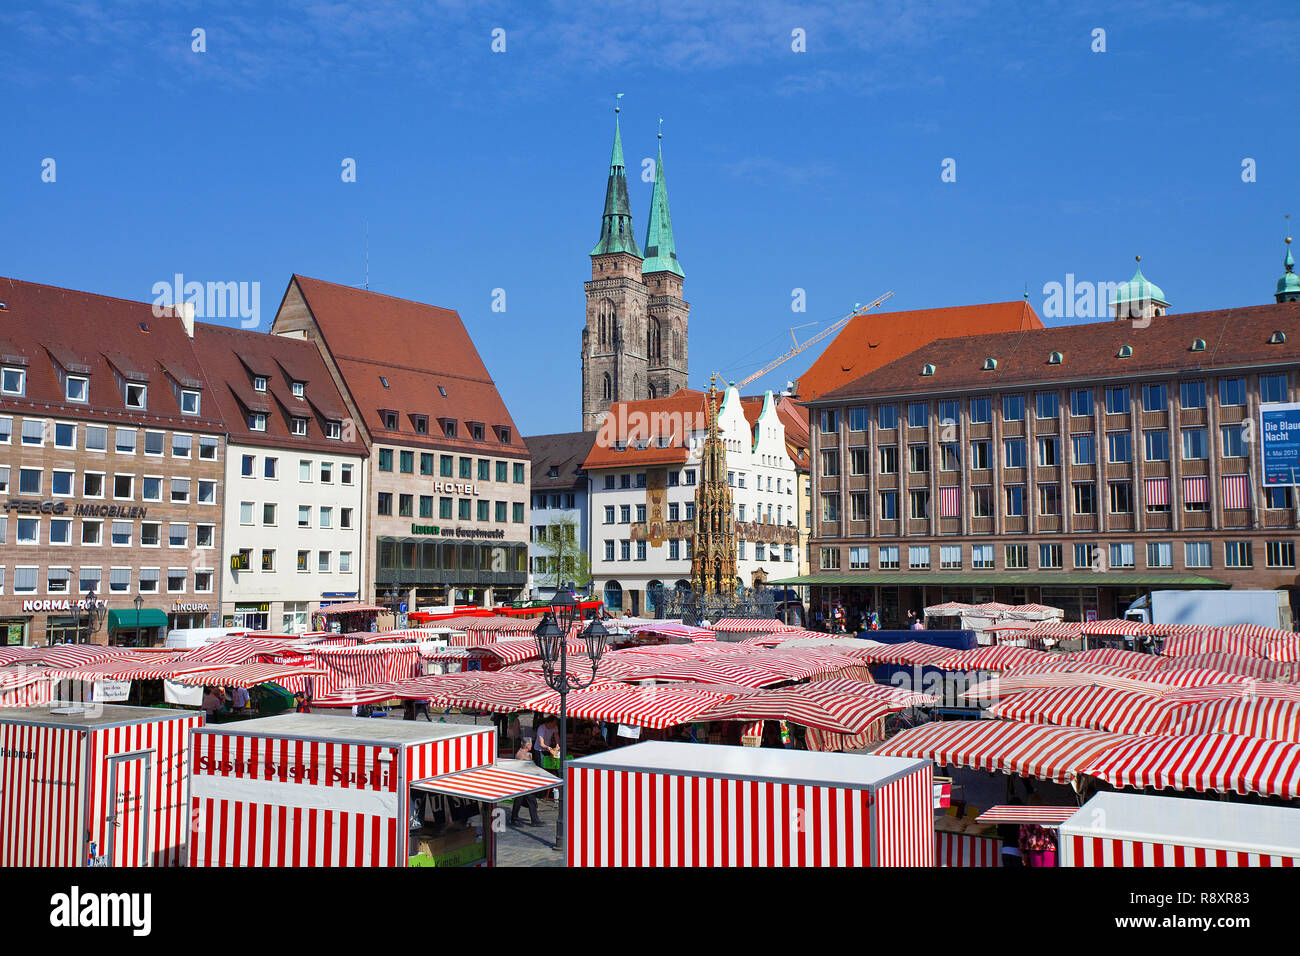 Main market, in the background the beauty well and Sebaldus church, old town, Nuremberg, Franconia, Bavaria, Germany, Europe - Stock Image